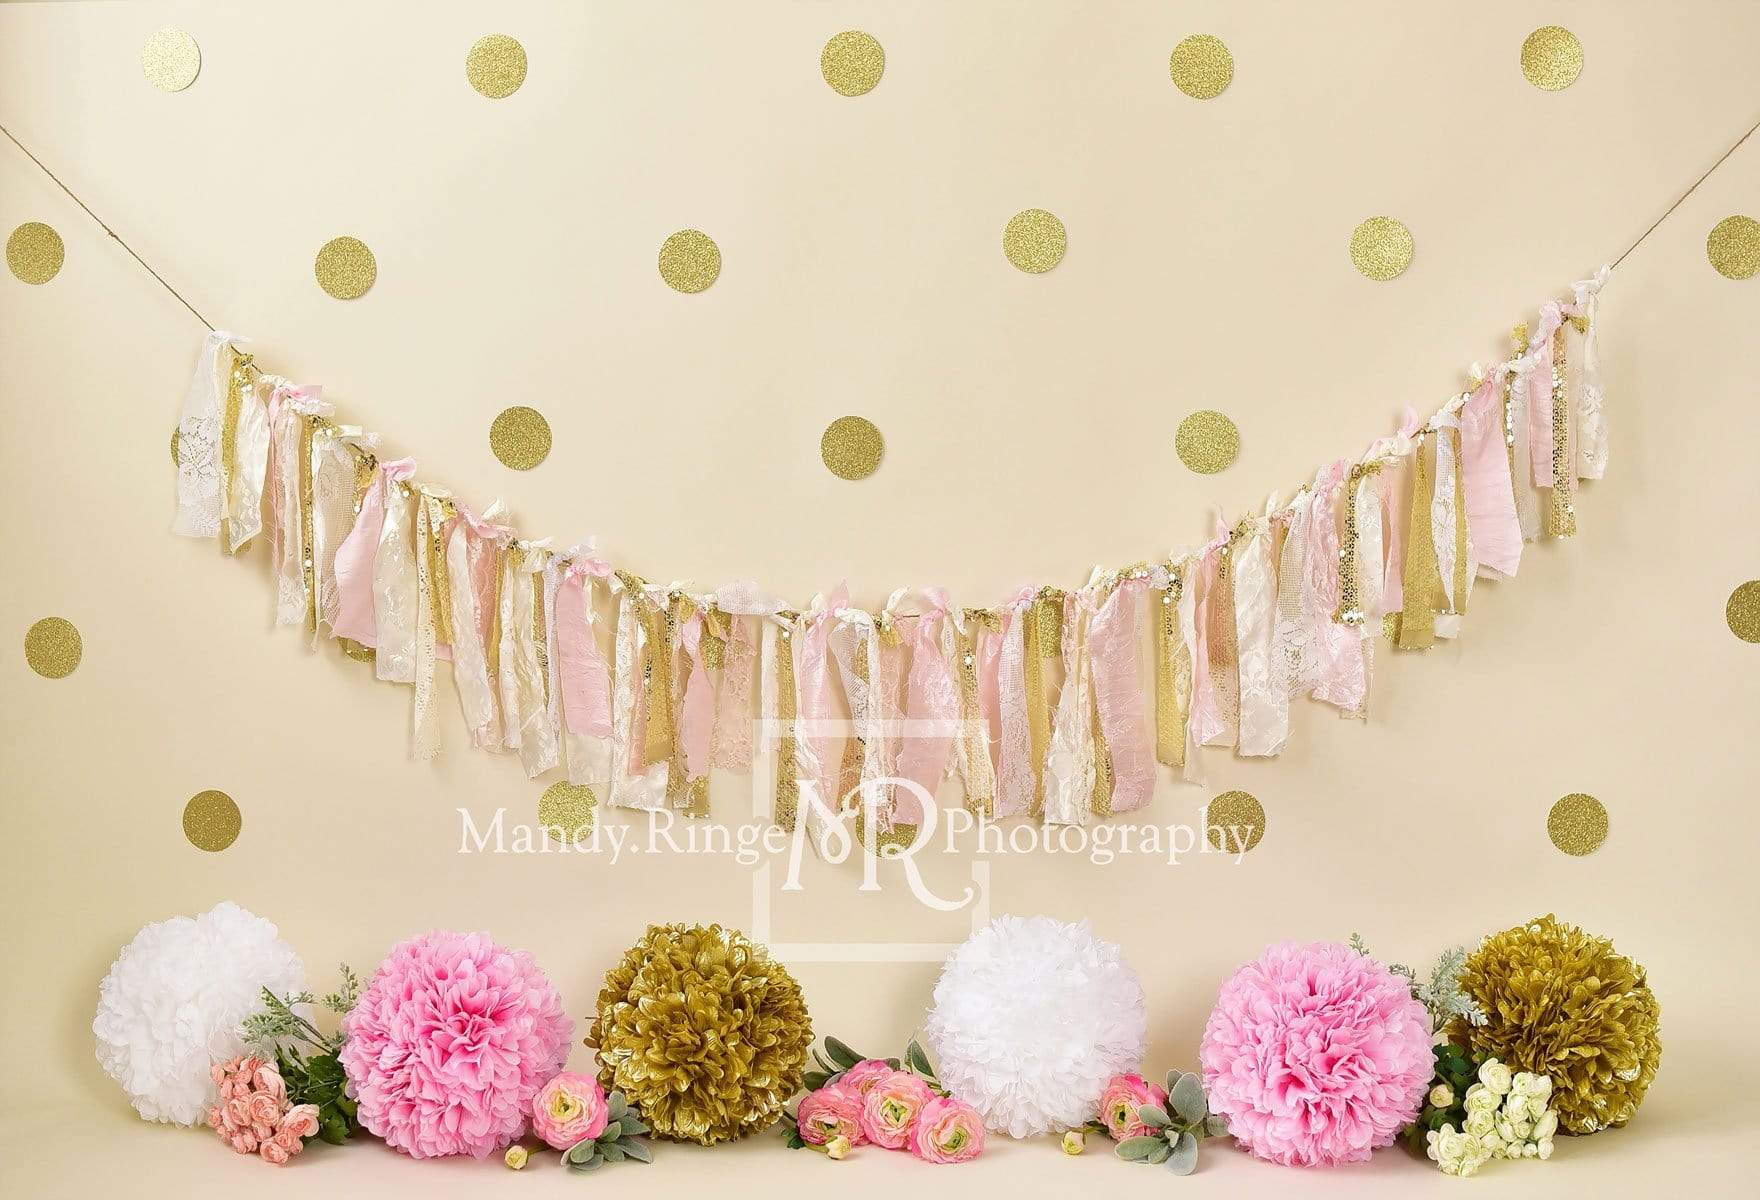 Load image into Gallery viewer, Kate Pink and Gold with Polkadots Birthday Backdrop for Photography Designed by Mandy Ringe Photography